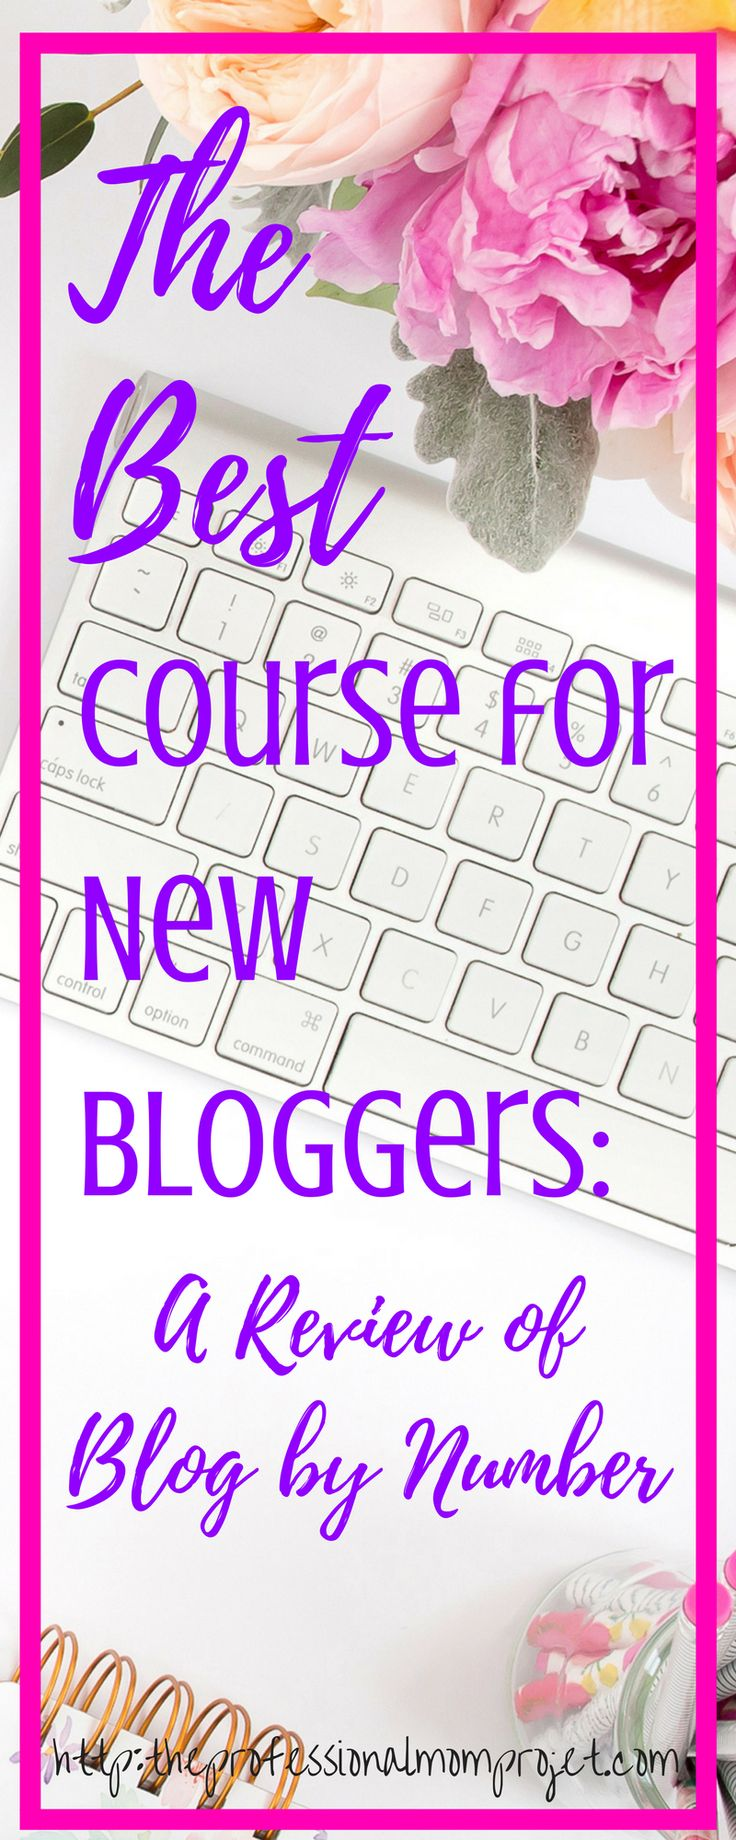 A great course for new bloggers! A Review of Blog by Number: blogging tips | new blogger | blogging ideas | blogging step by step | blogging book | blog by number review | how to start a blog